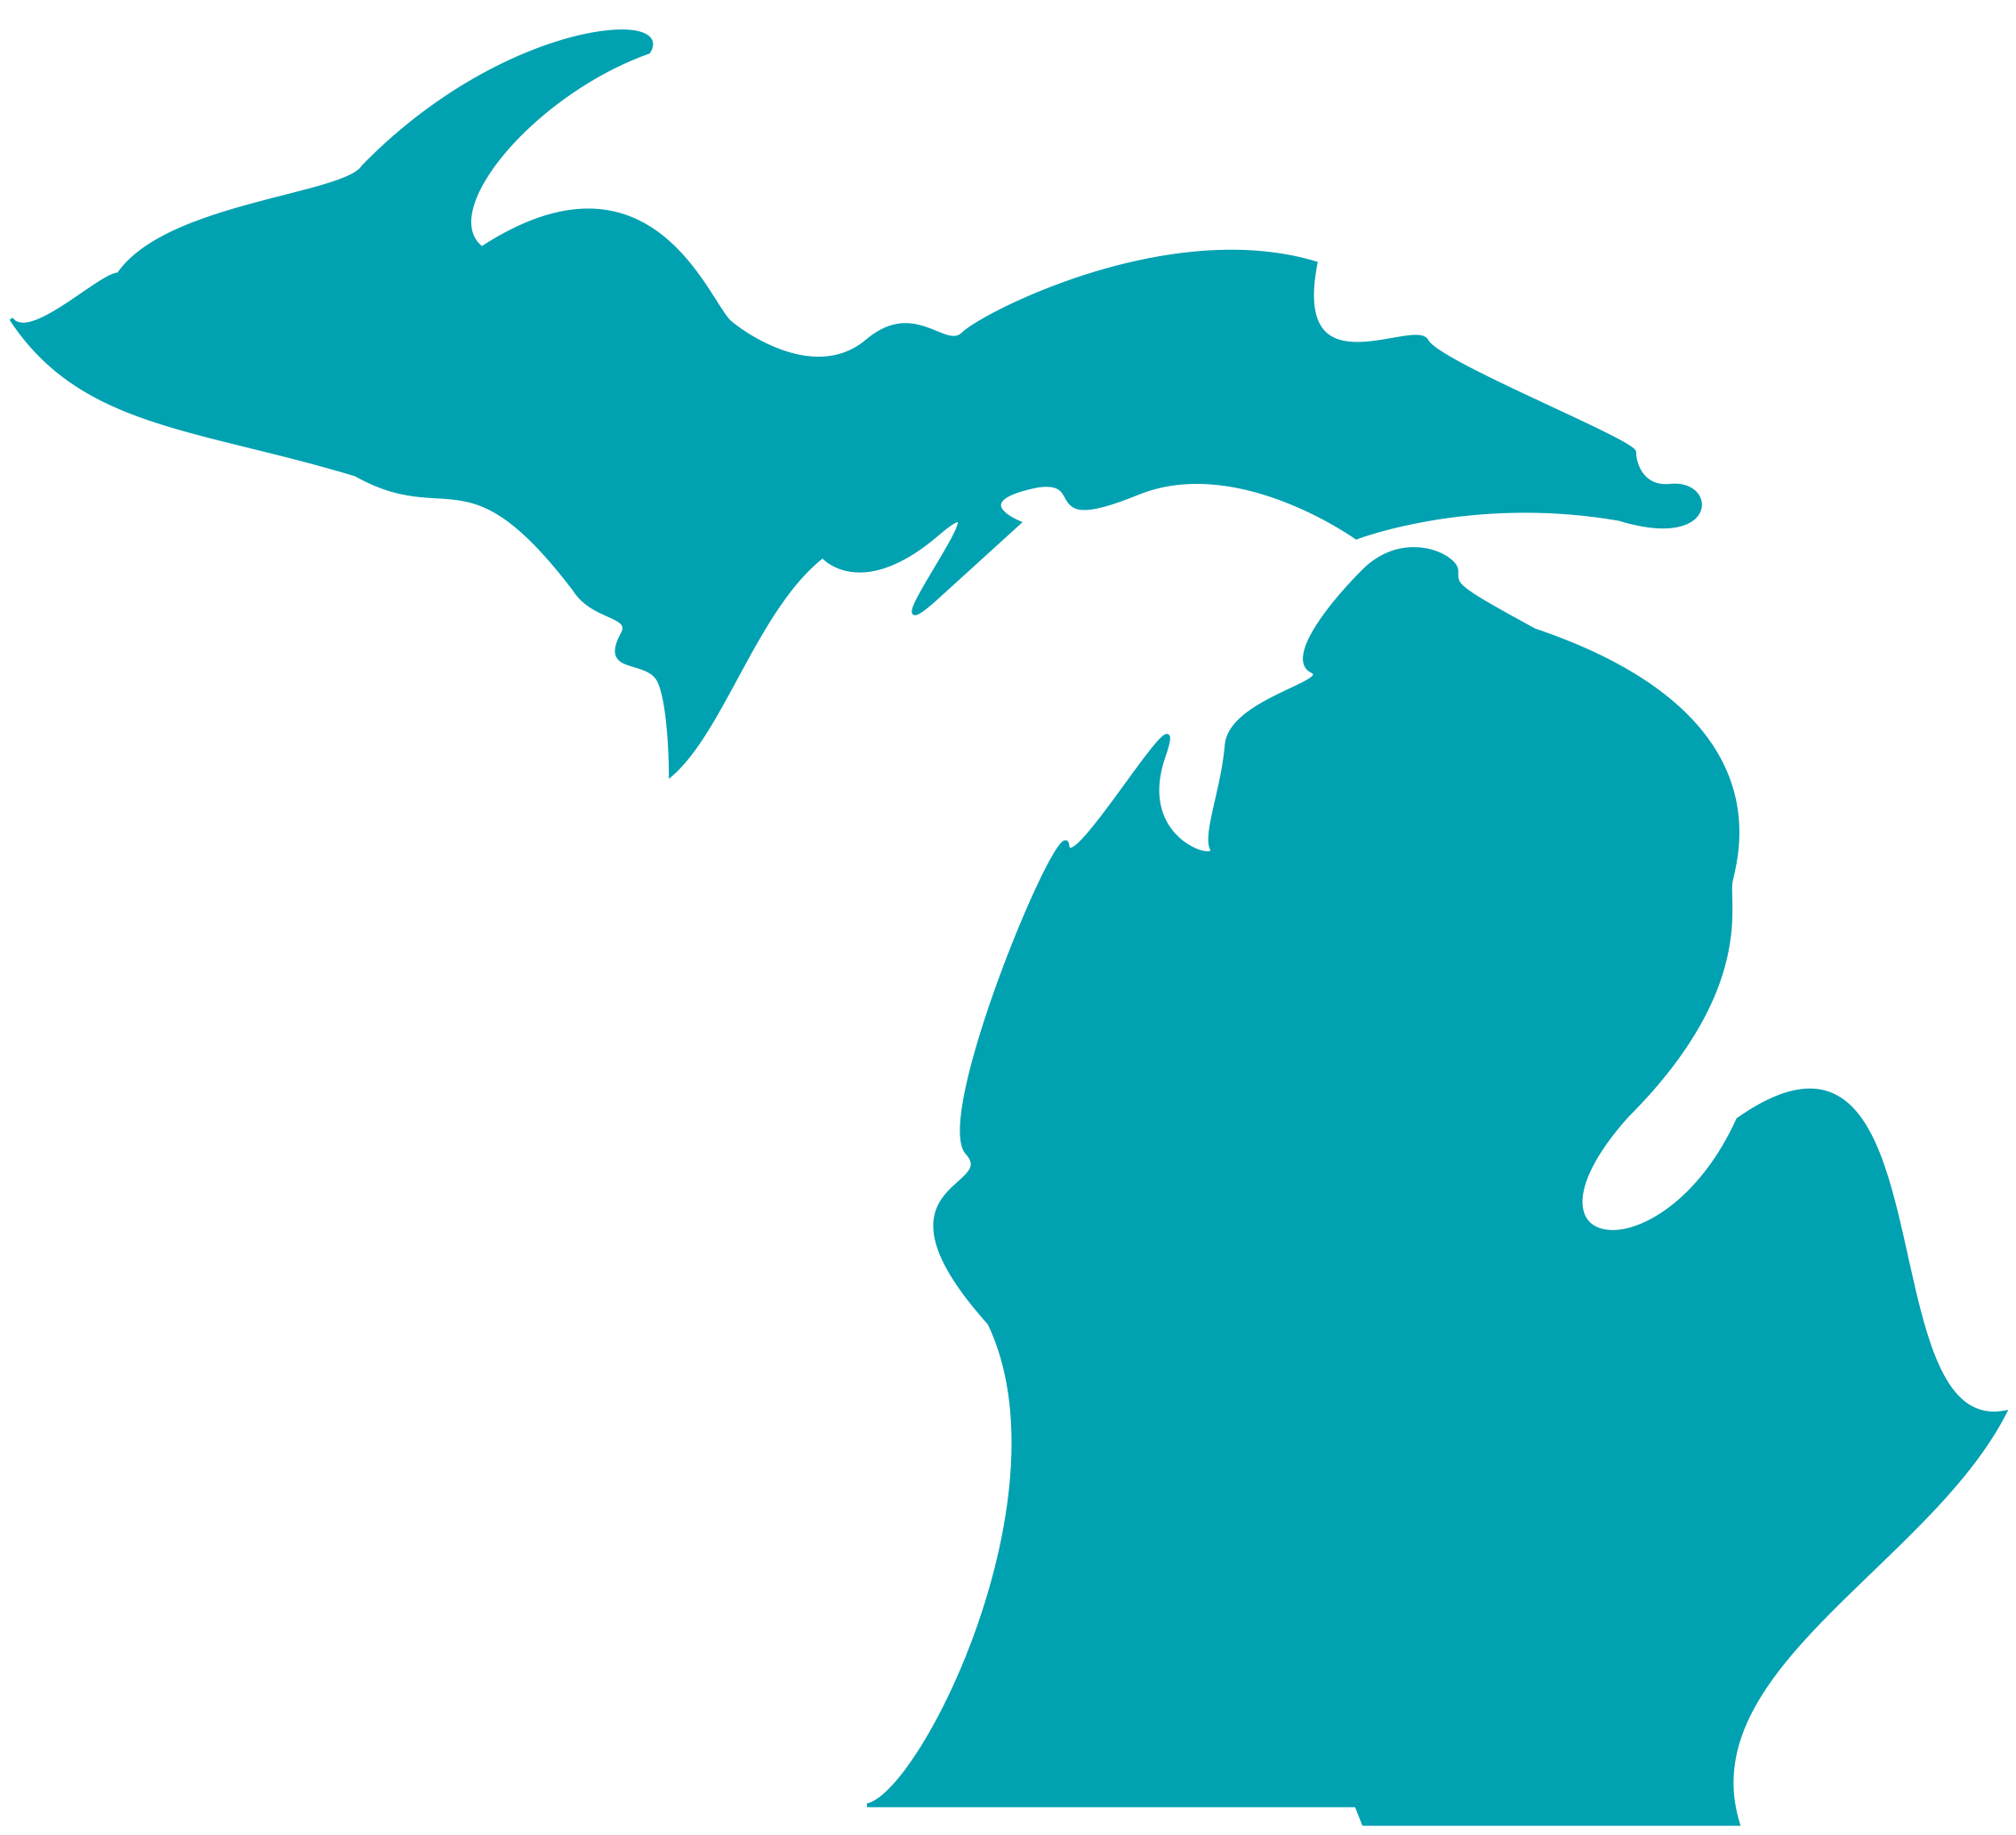 State Of Michigan Outline - ClipArt Best